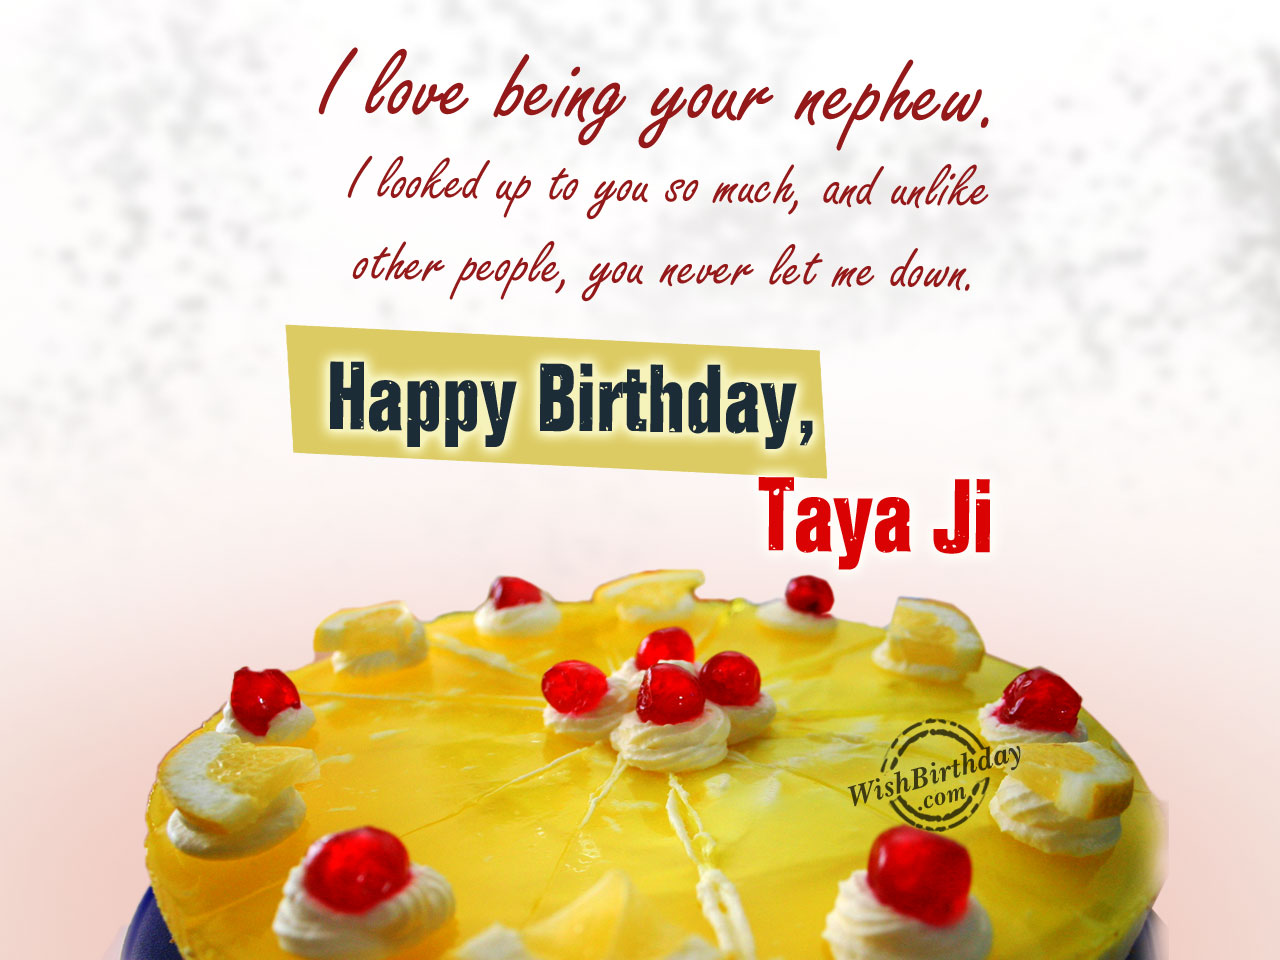 I love you taya ji, Happy birthday - WishBirthday.com